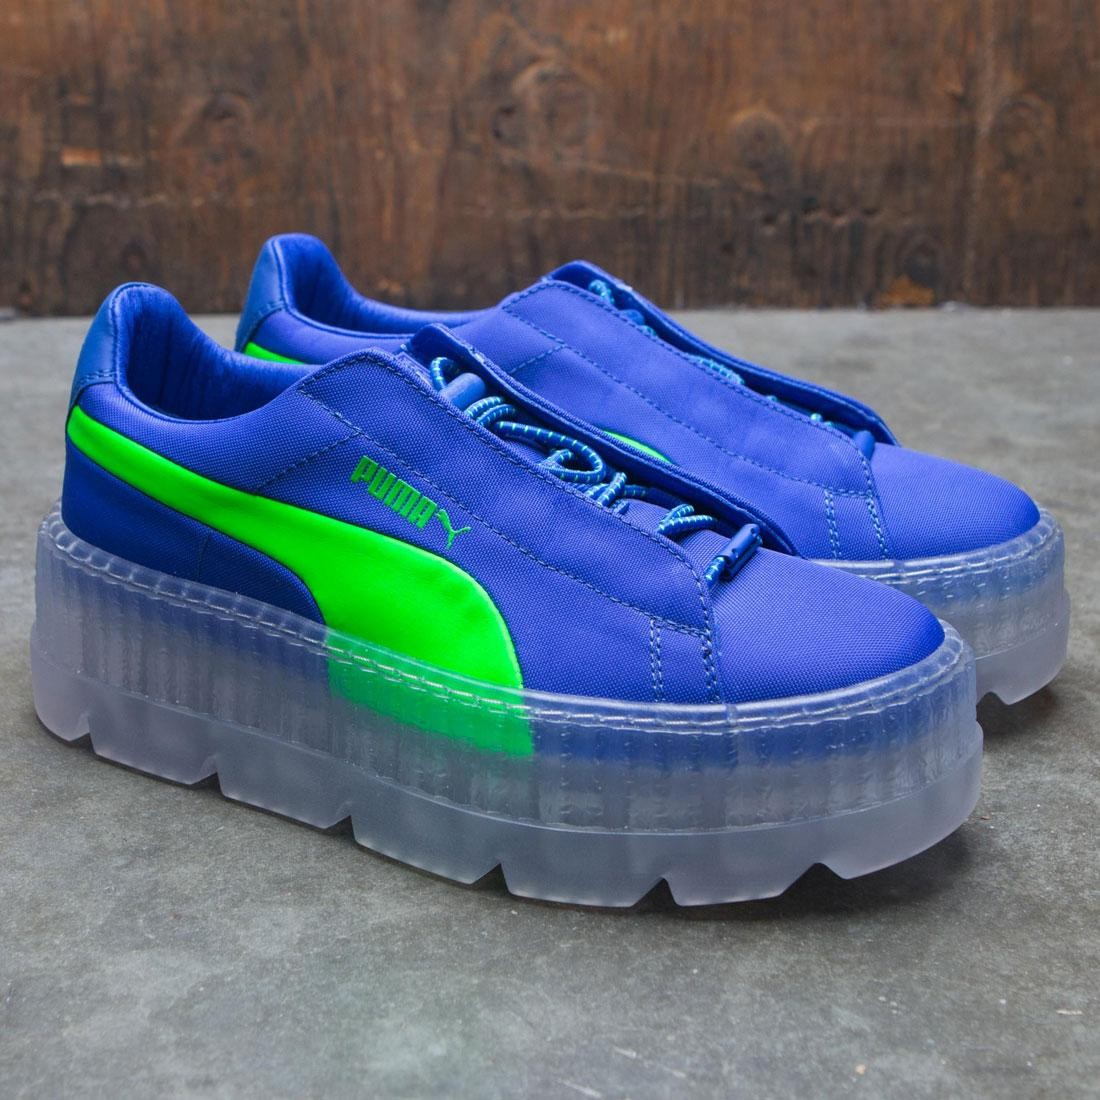 promo code 67d60 50c9d FENTY SURF🔥clear midsole DAZZLING BLUE/GREEN GECKO